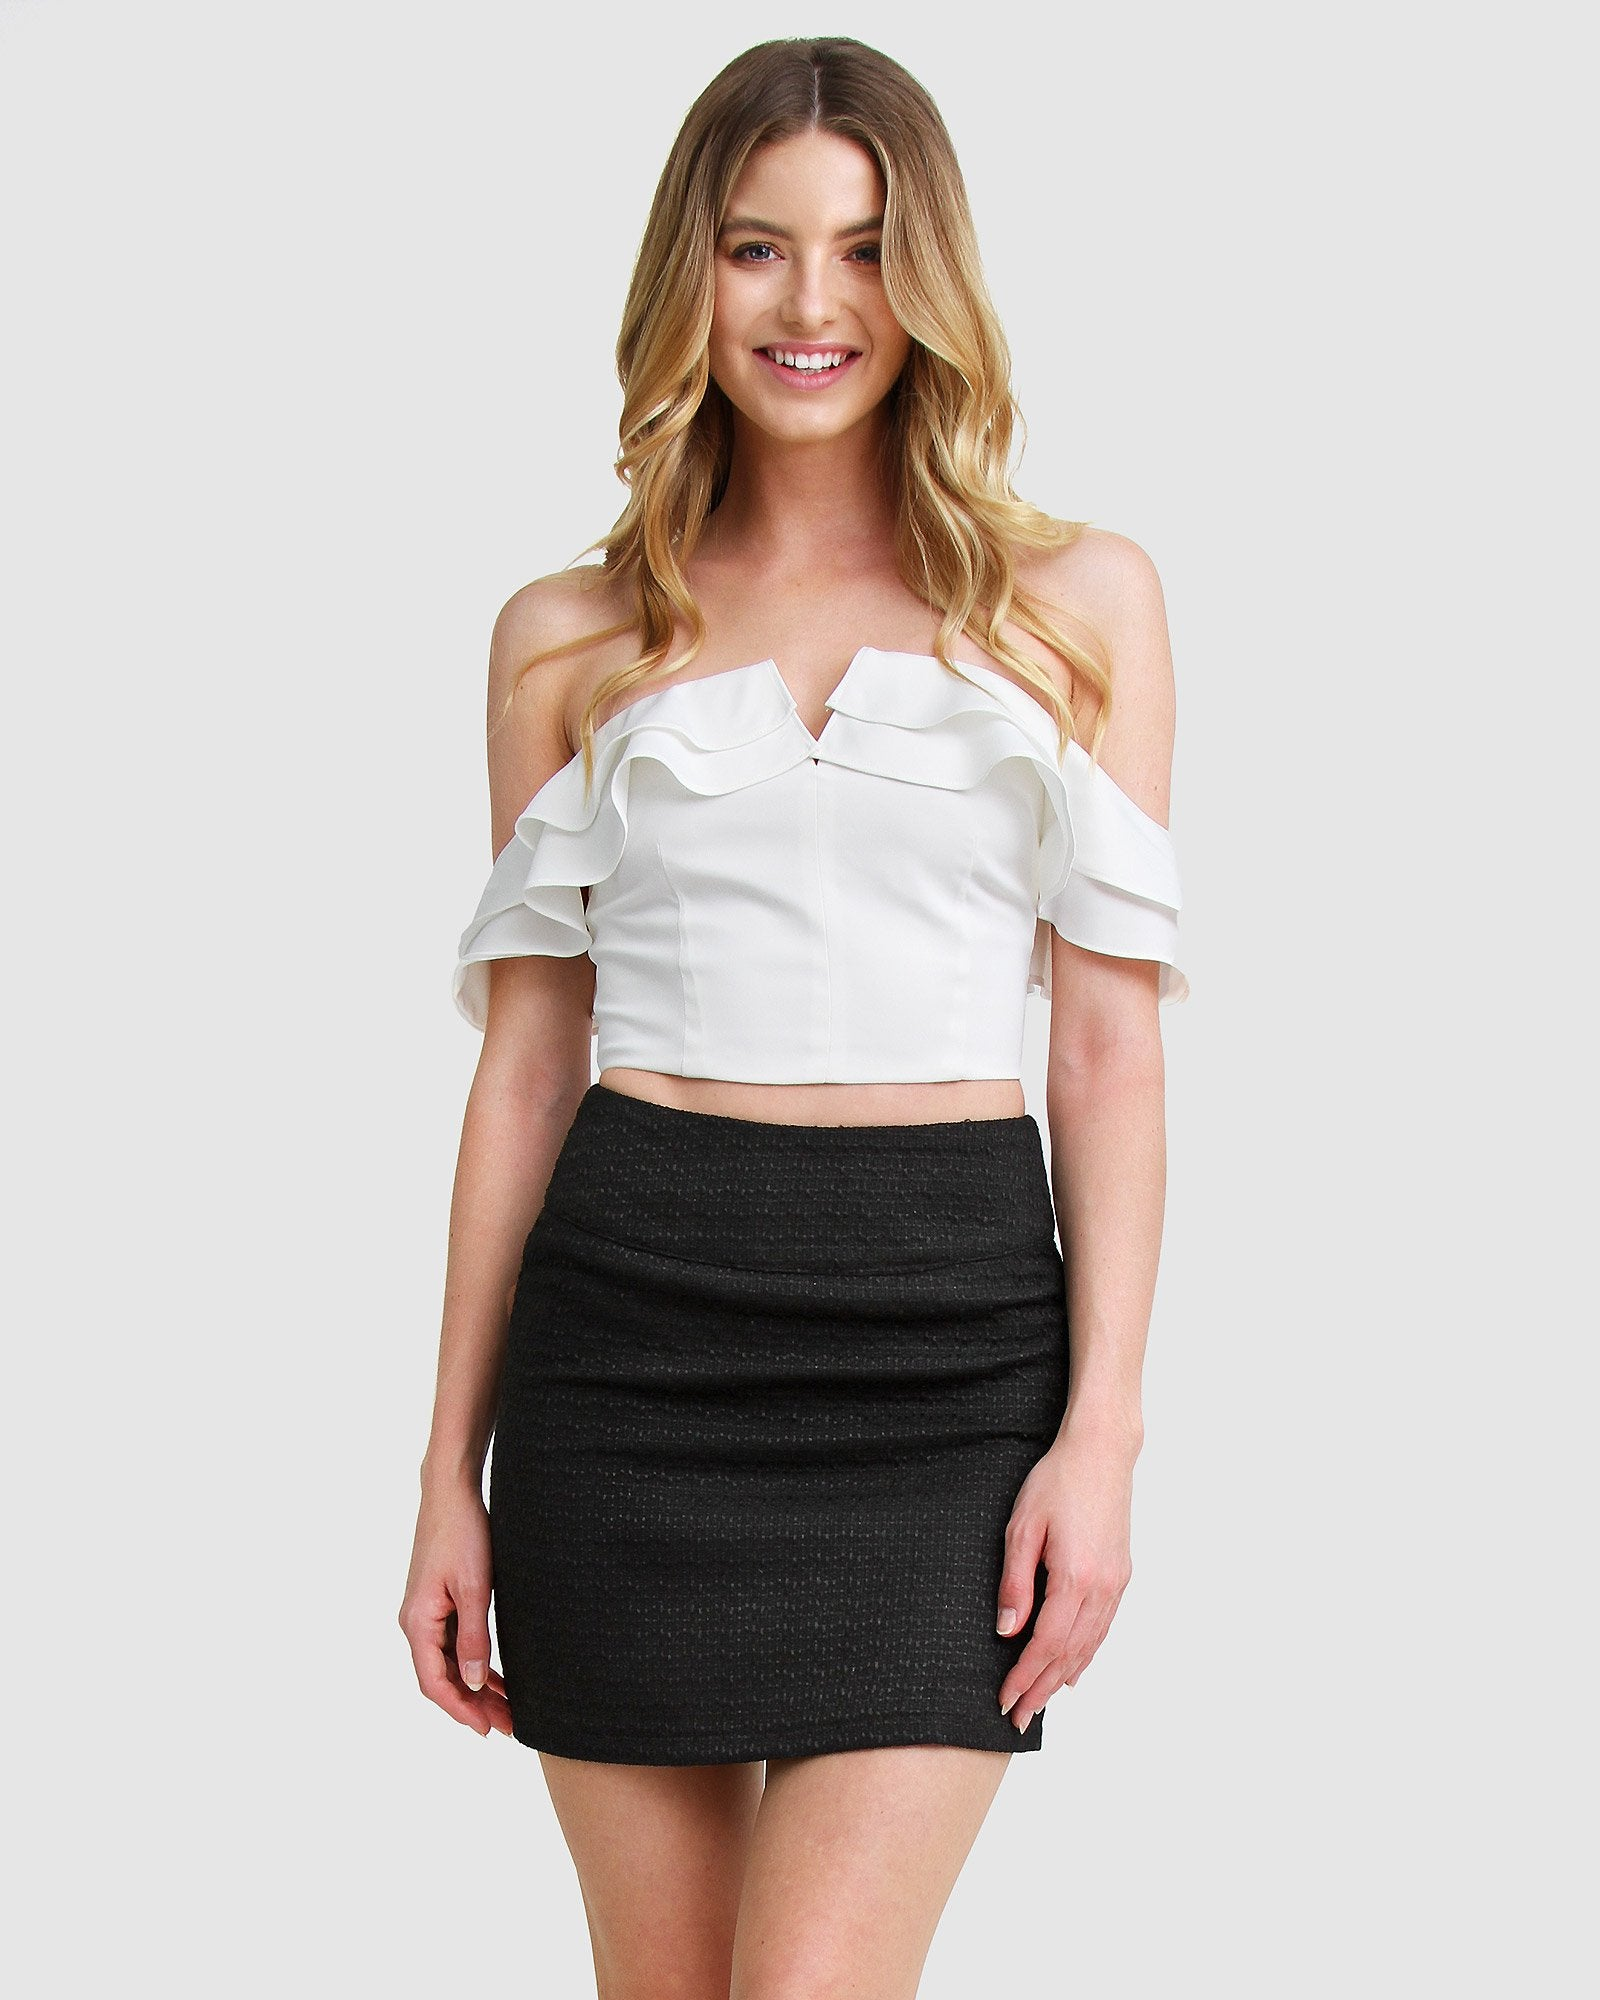 Paddington Fair Skirt - Black